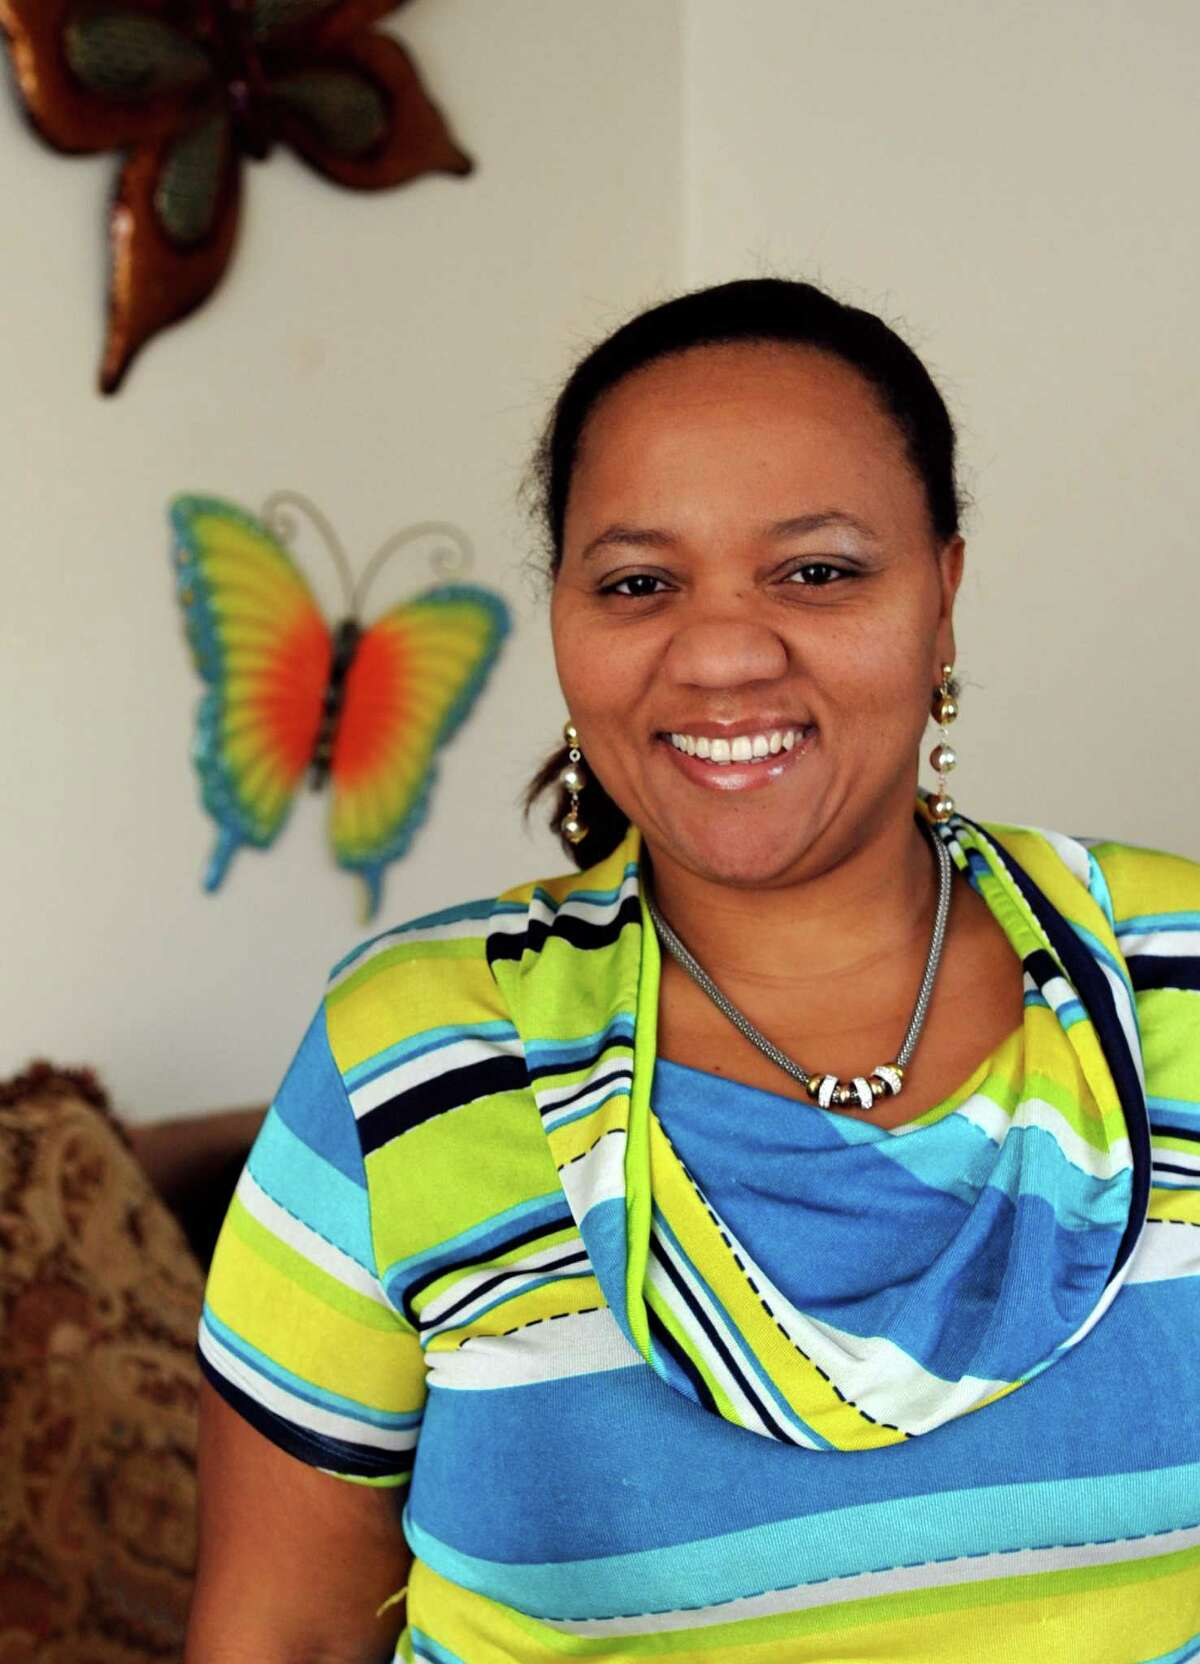 Evelyn Suarez poses for a photo in her Stamford home on Saturday, January 26, 2013.